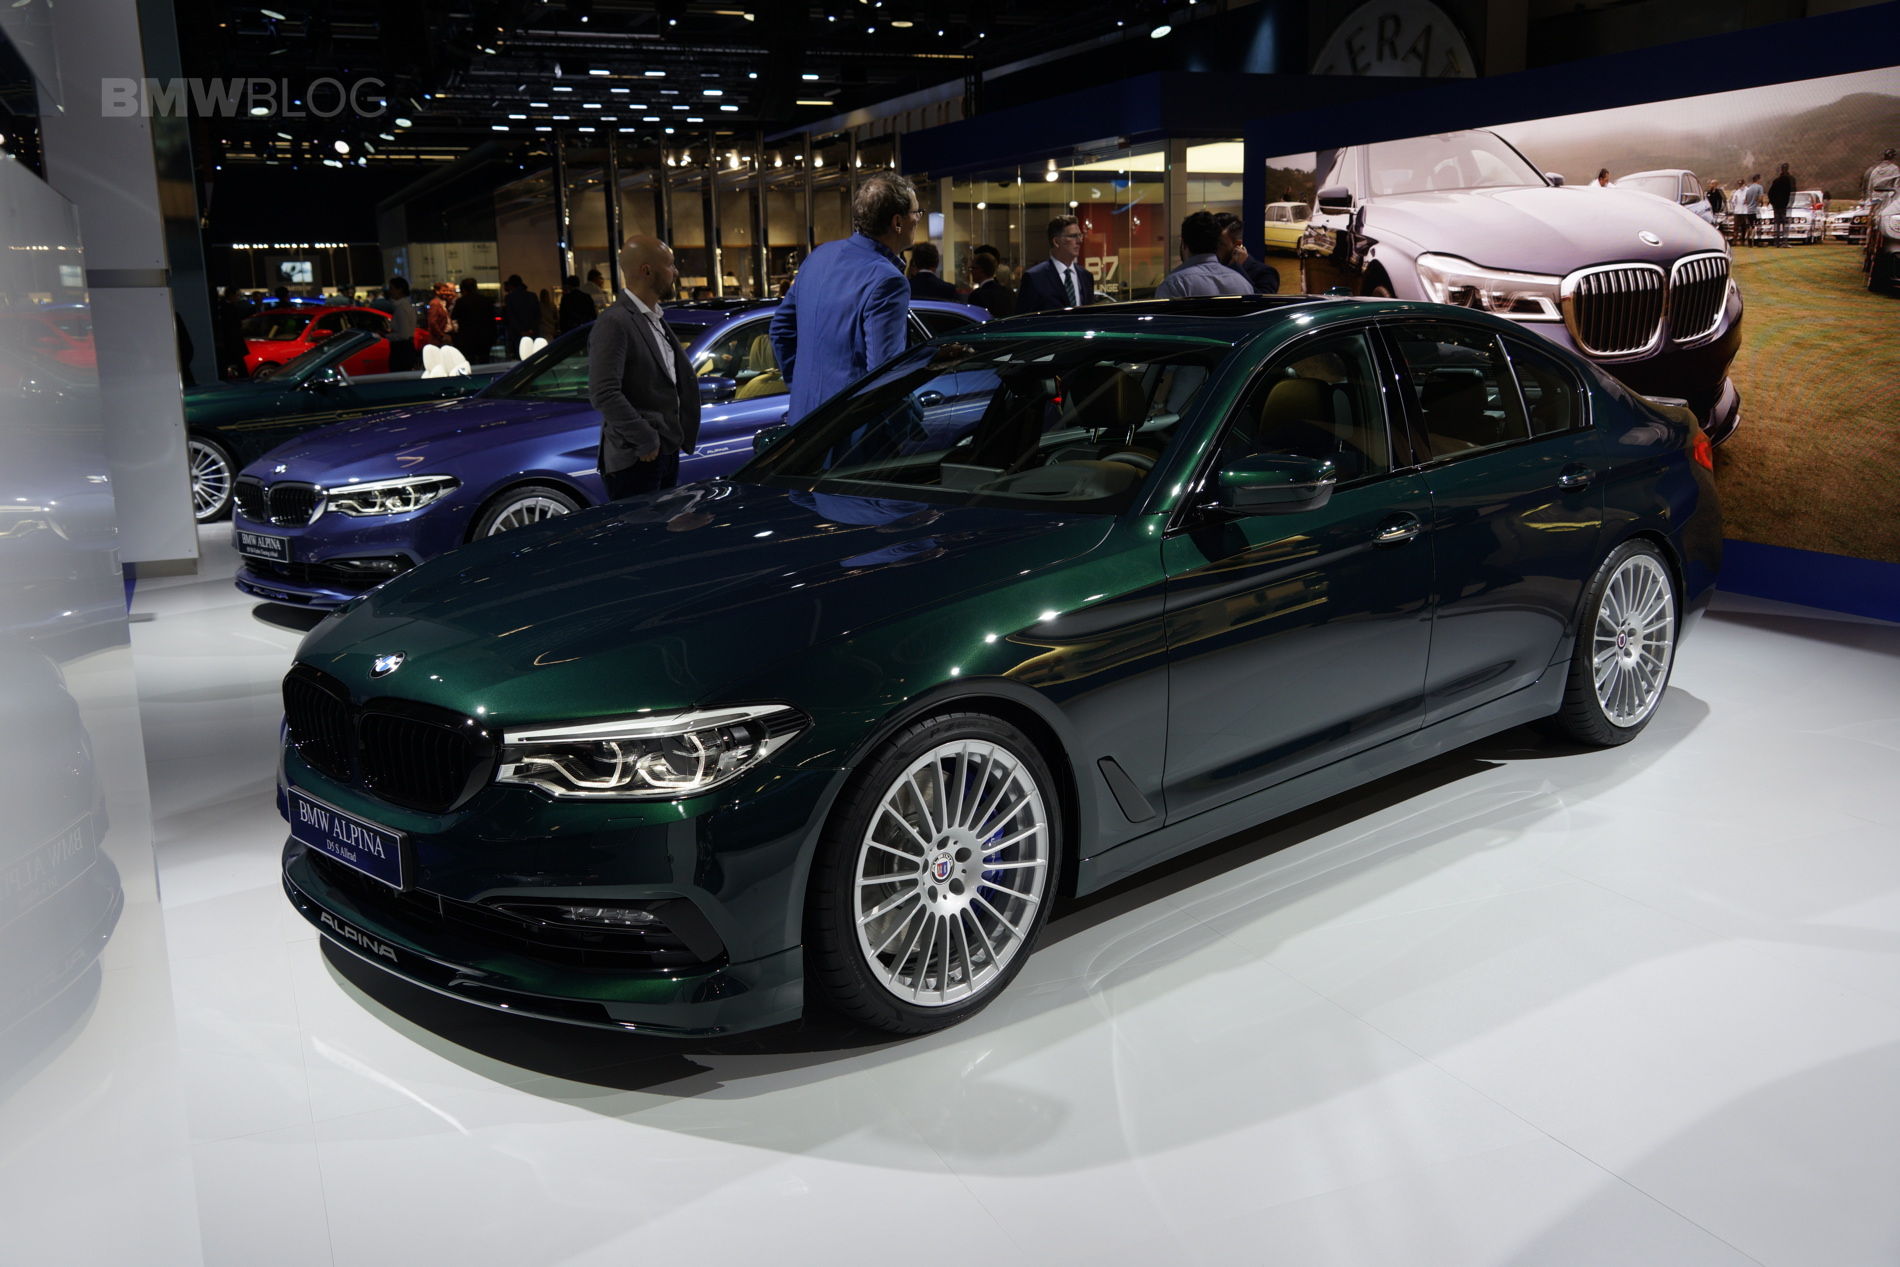 2017 Frankfurt Auto Show Bmw Alpina D5 S G30 With 388 Horsepower Triturbo